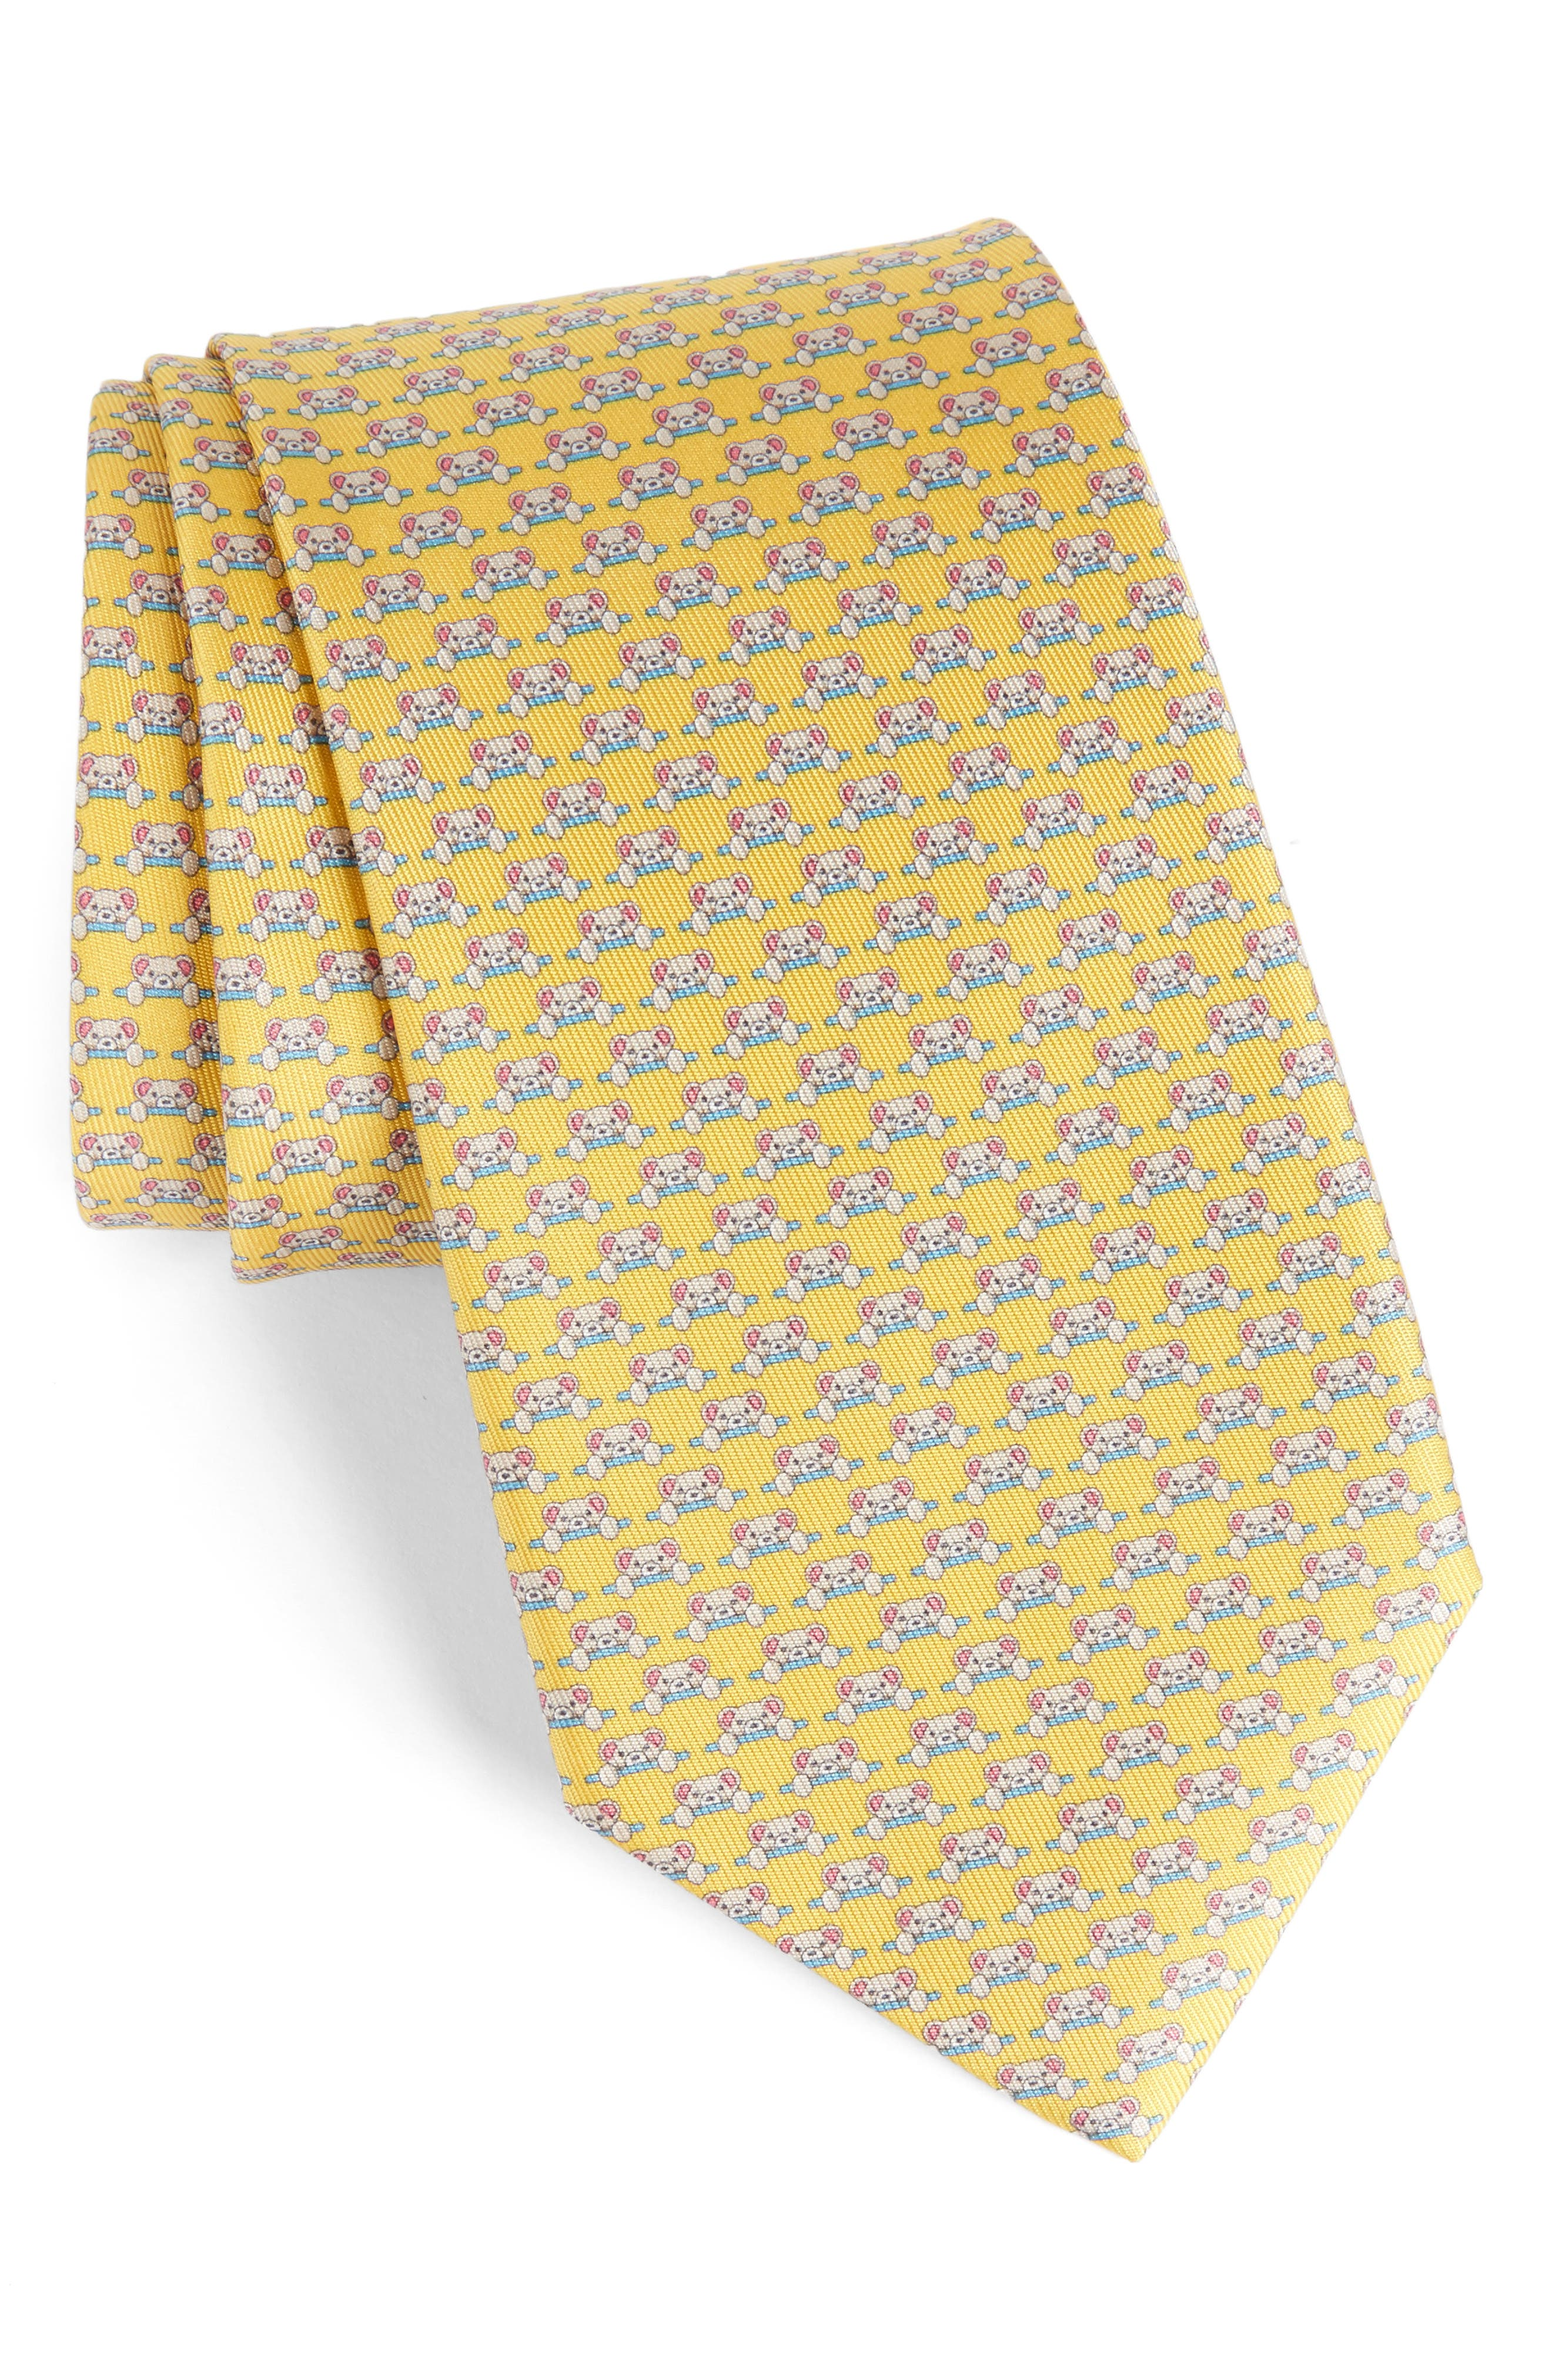 Dino Bear Print Silk Tie,                         Main,                         color, Yellow